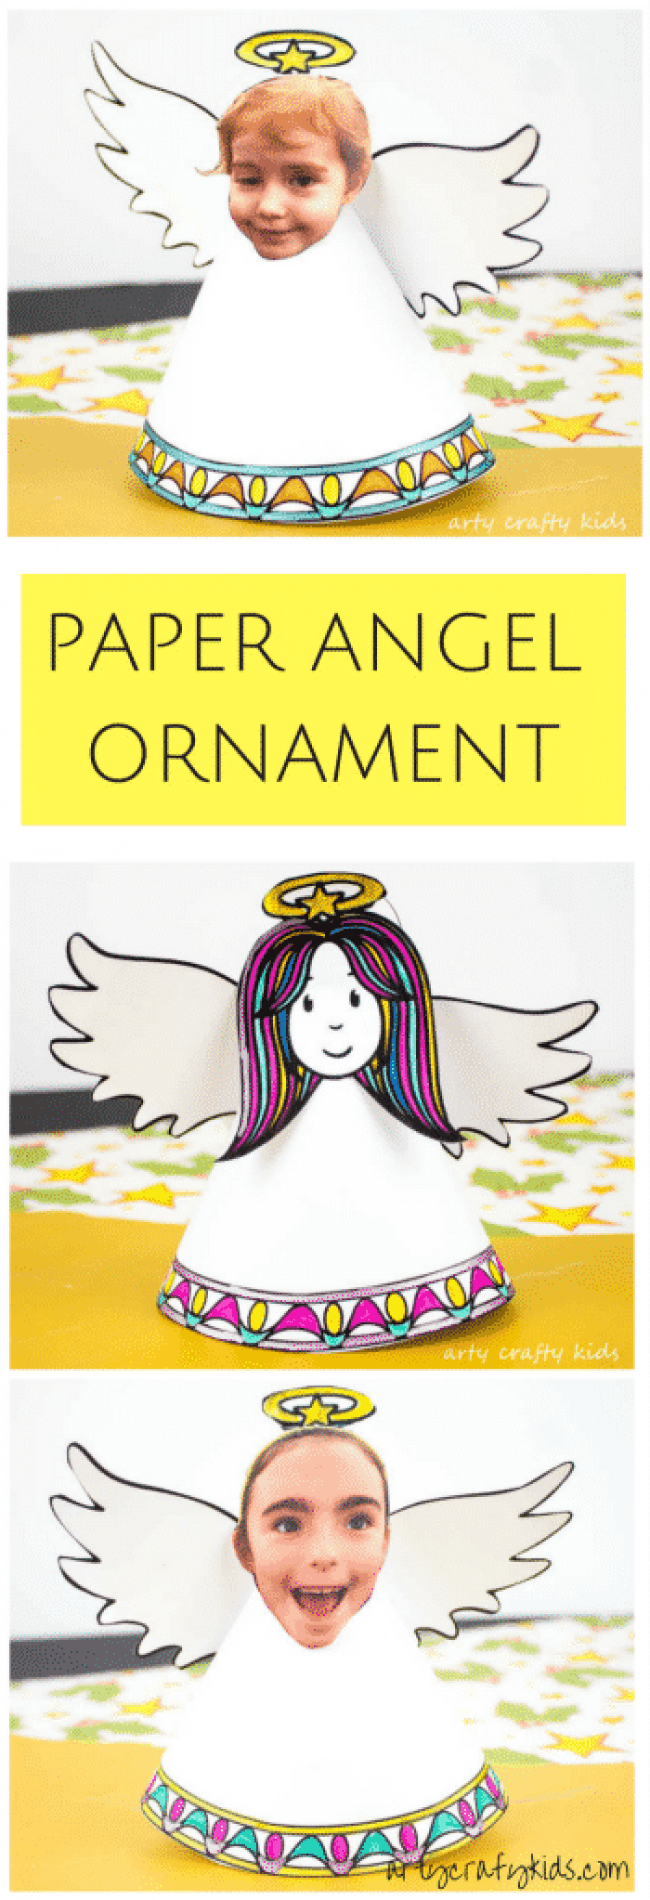 Arty Crafty Kids   Christmas Crafts for Kids   Adorable Paper Angel Christmas Ornament for Kids, includes a free template for kids to design, colour and cut! #christmascraft #papercraft #christmascraftsforkids #christmasornament #freedownload